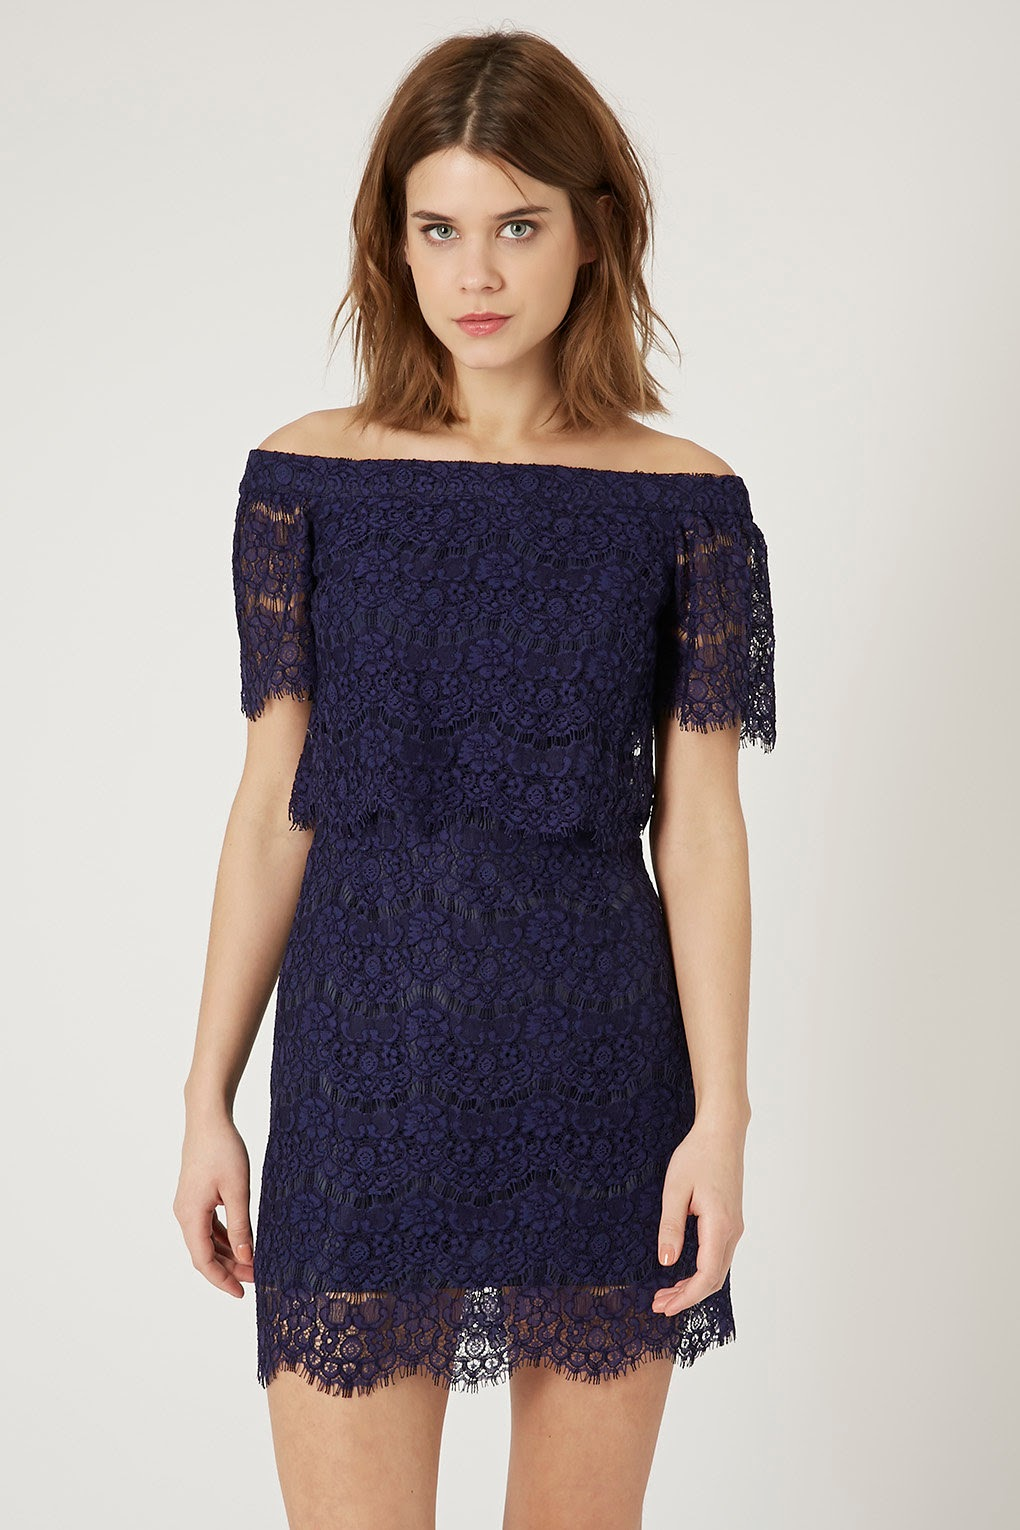 topshop navy lace dress